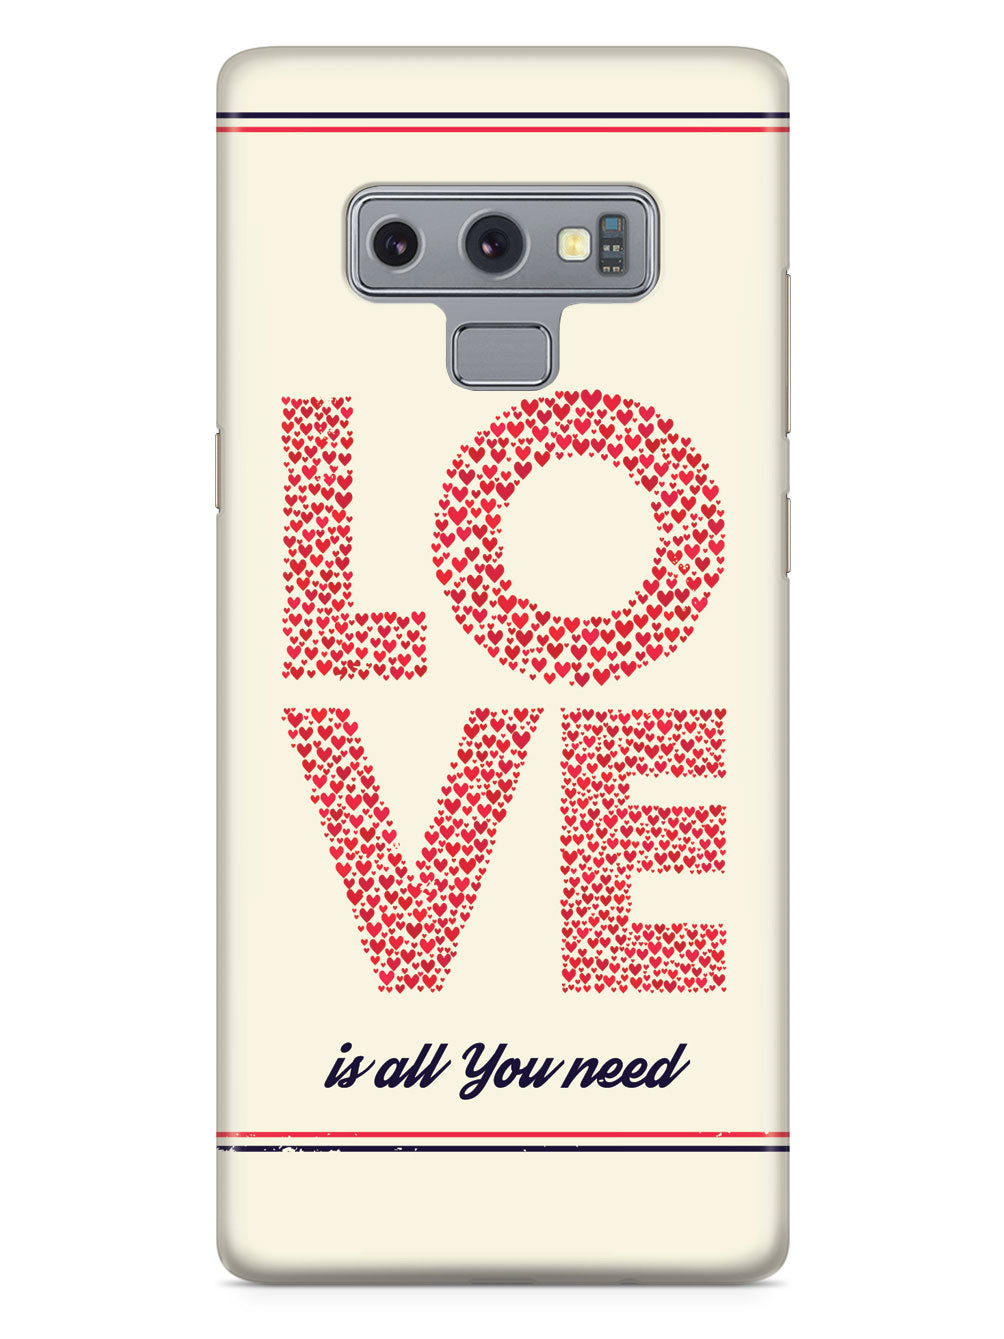 Love is all you need - Red Hearts - White Case